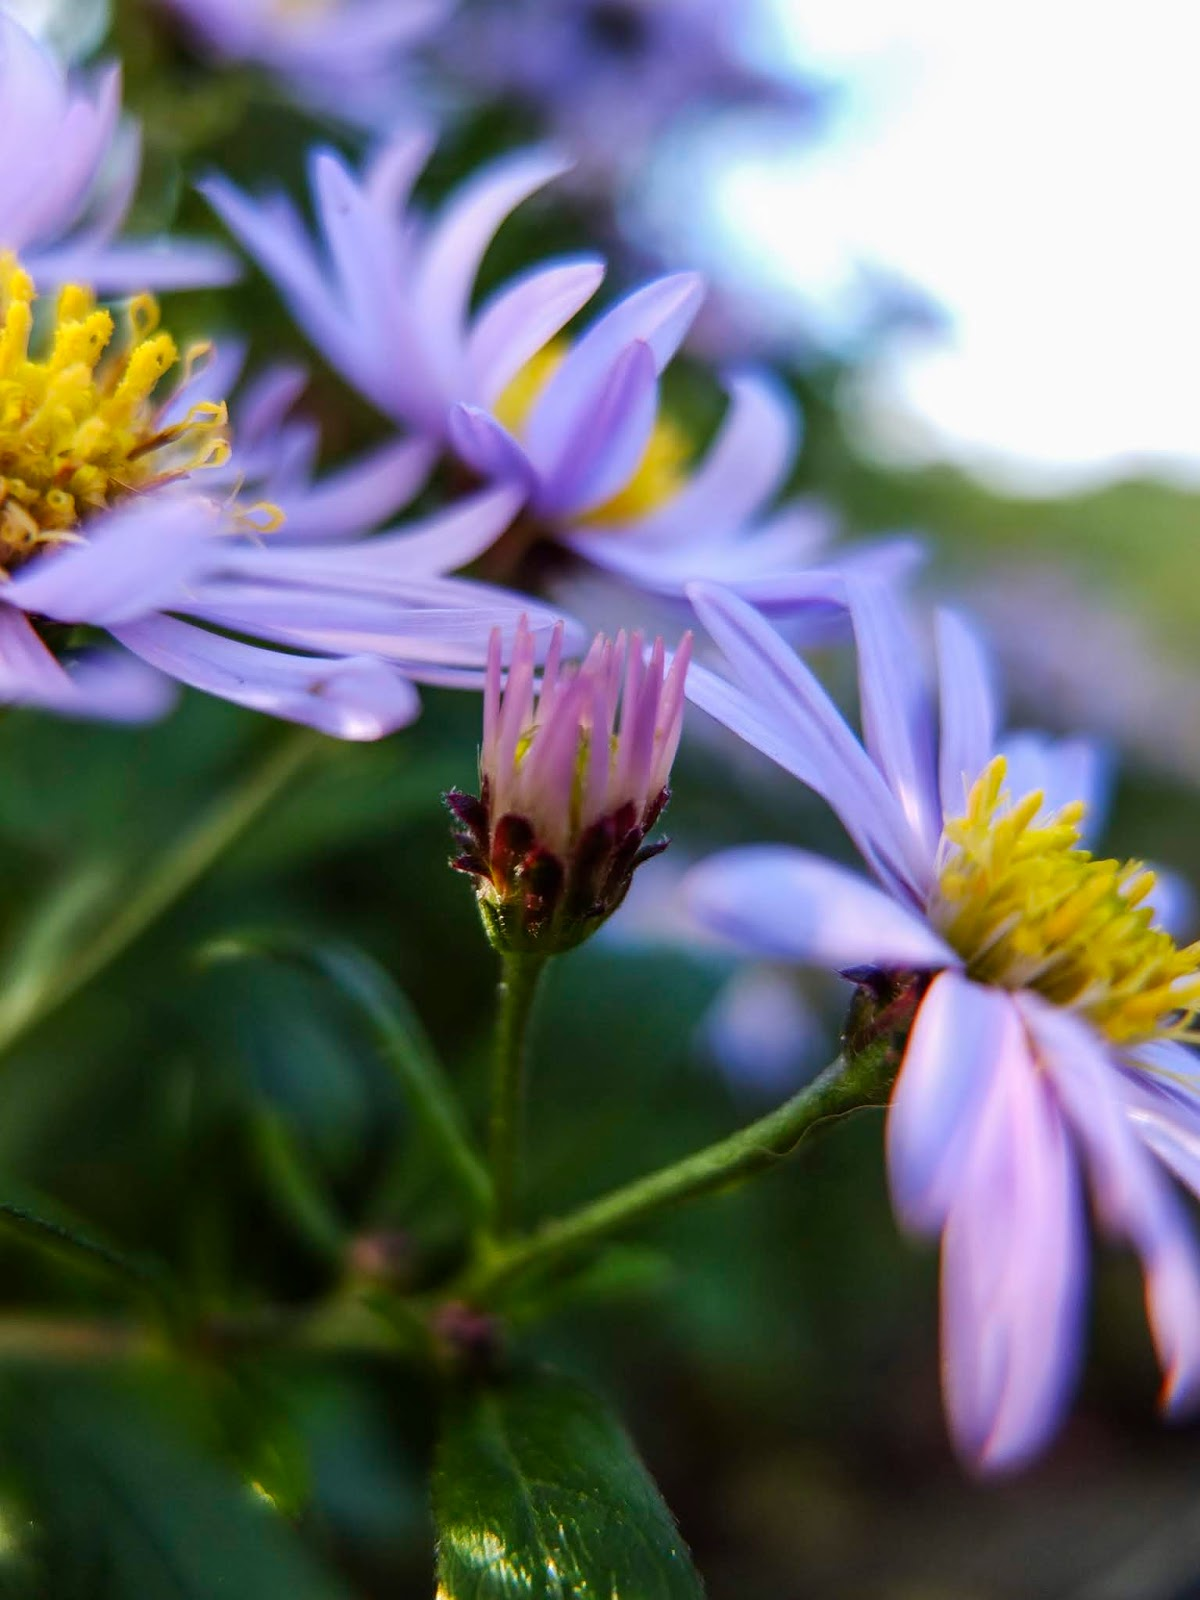 Close up of purple Aster flowers with yellow centres in dappled sunlight.